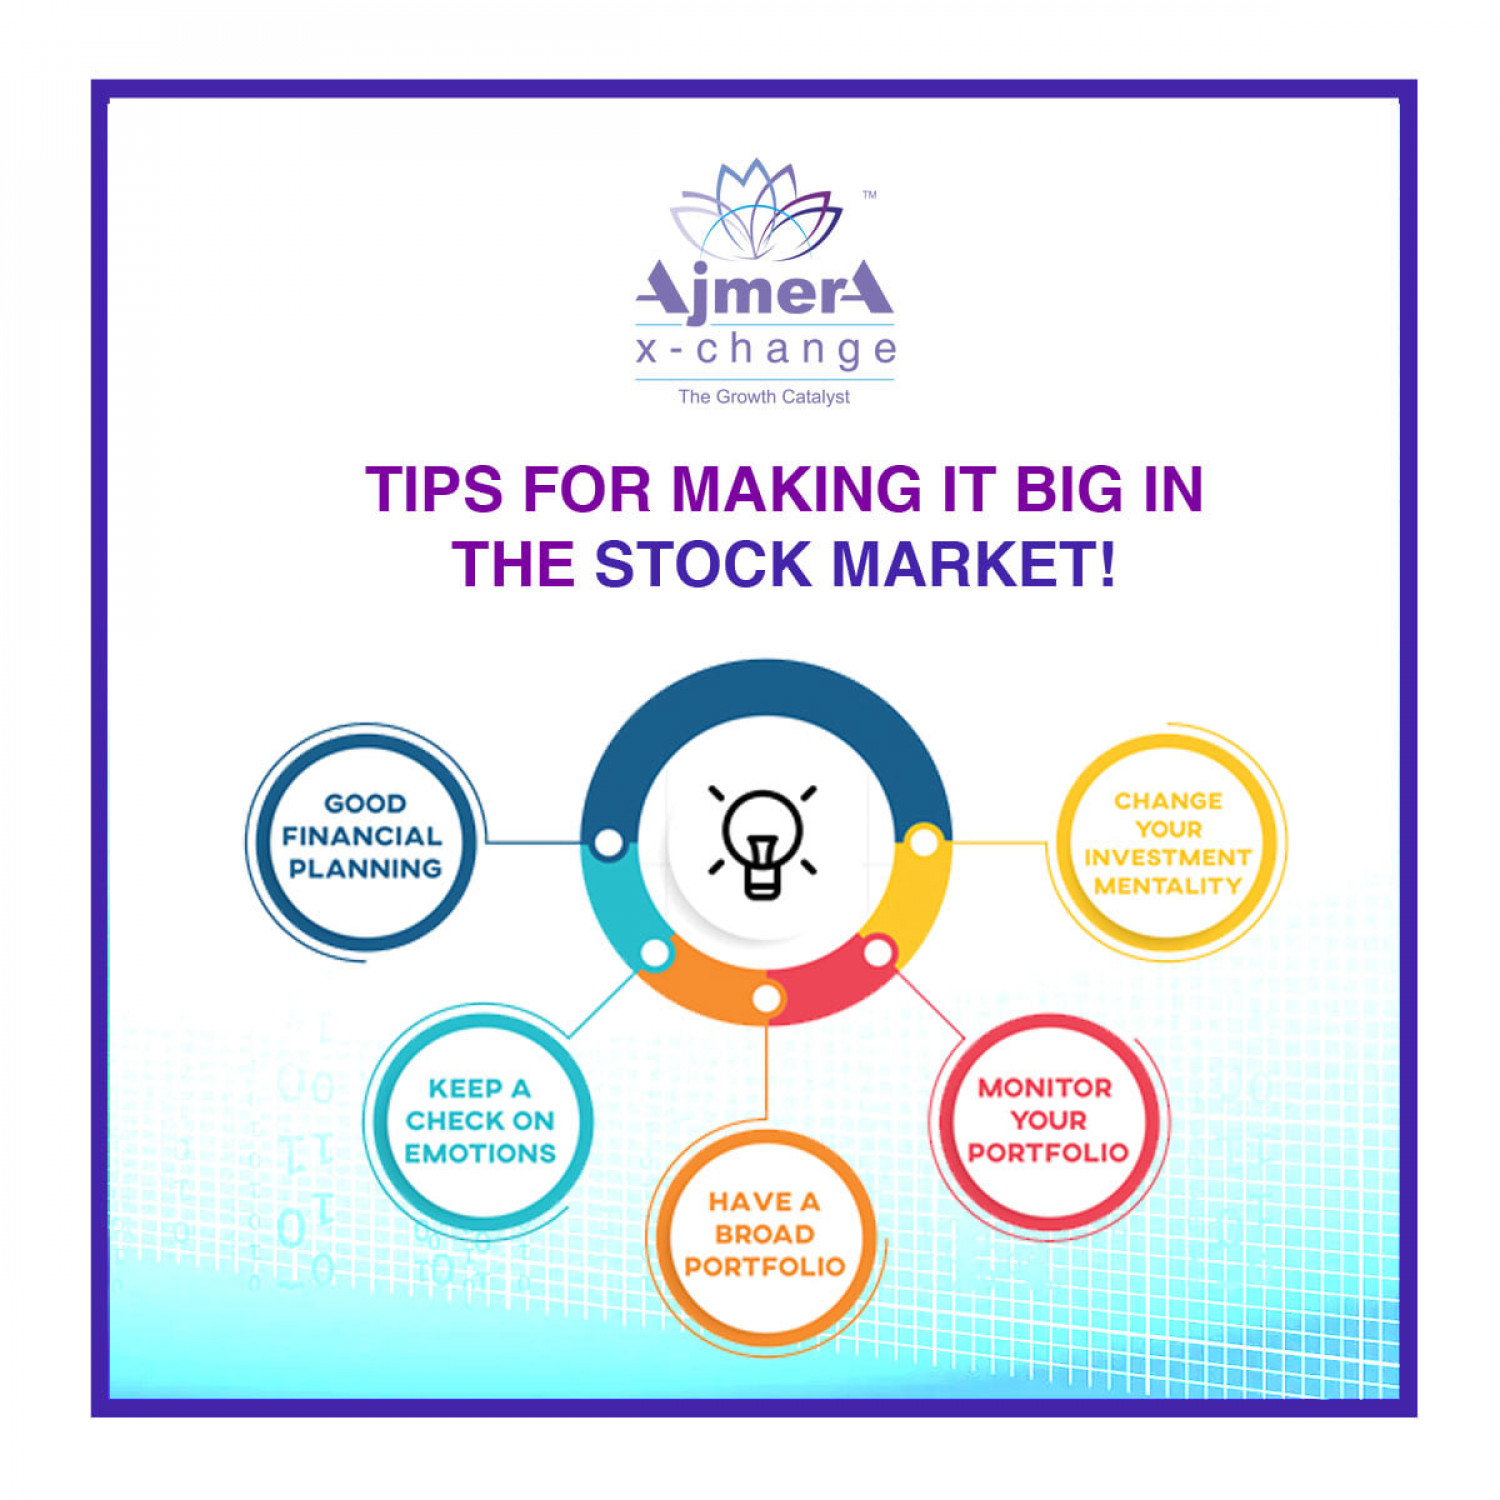 Tips for Making it Big in Stock Market! Infographic